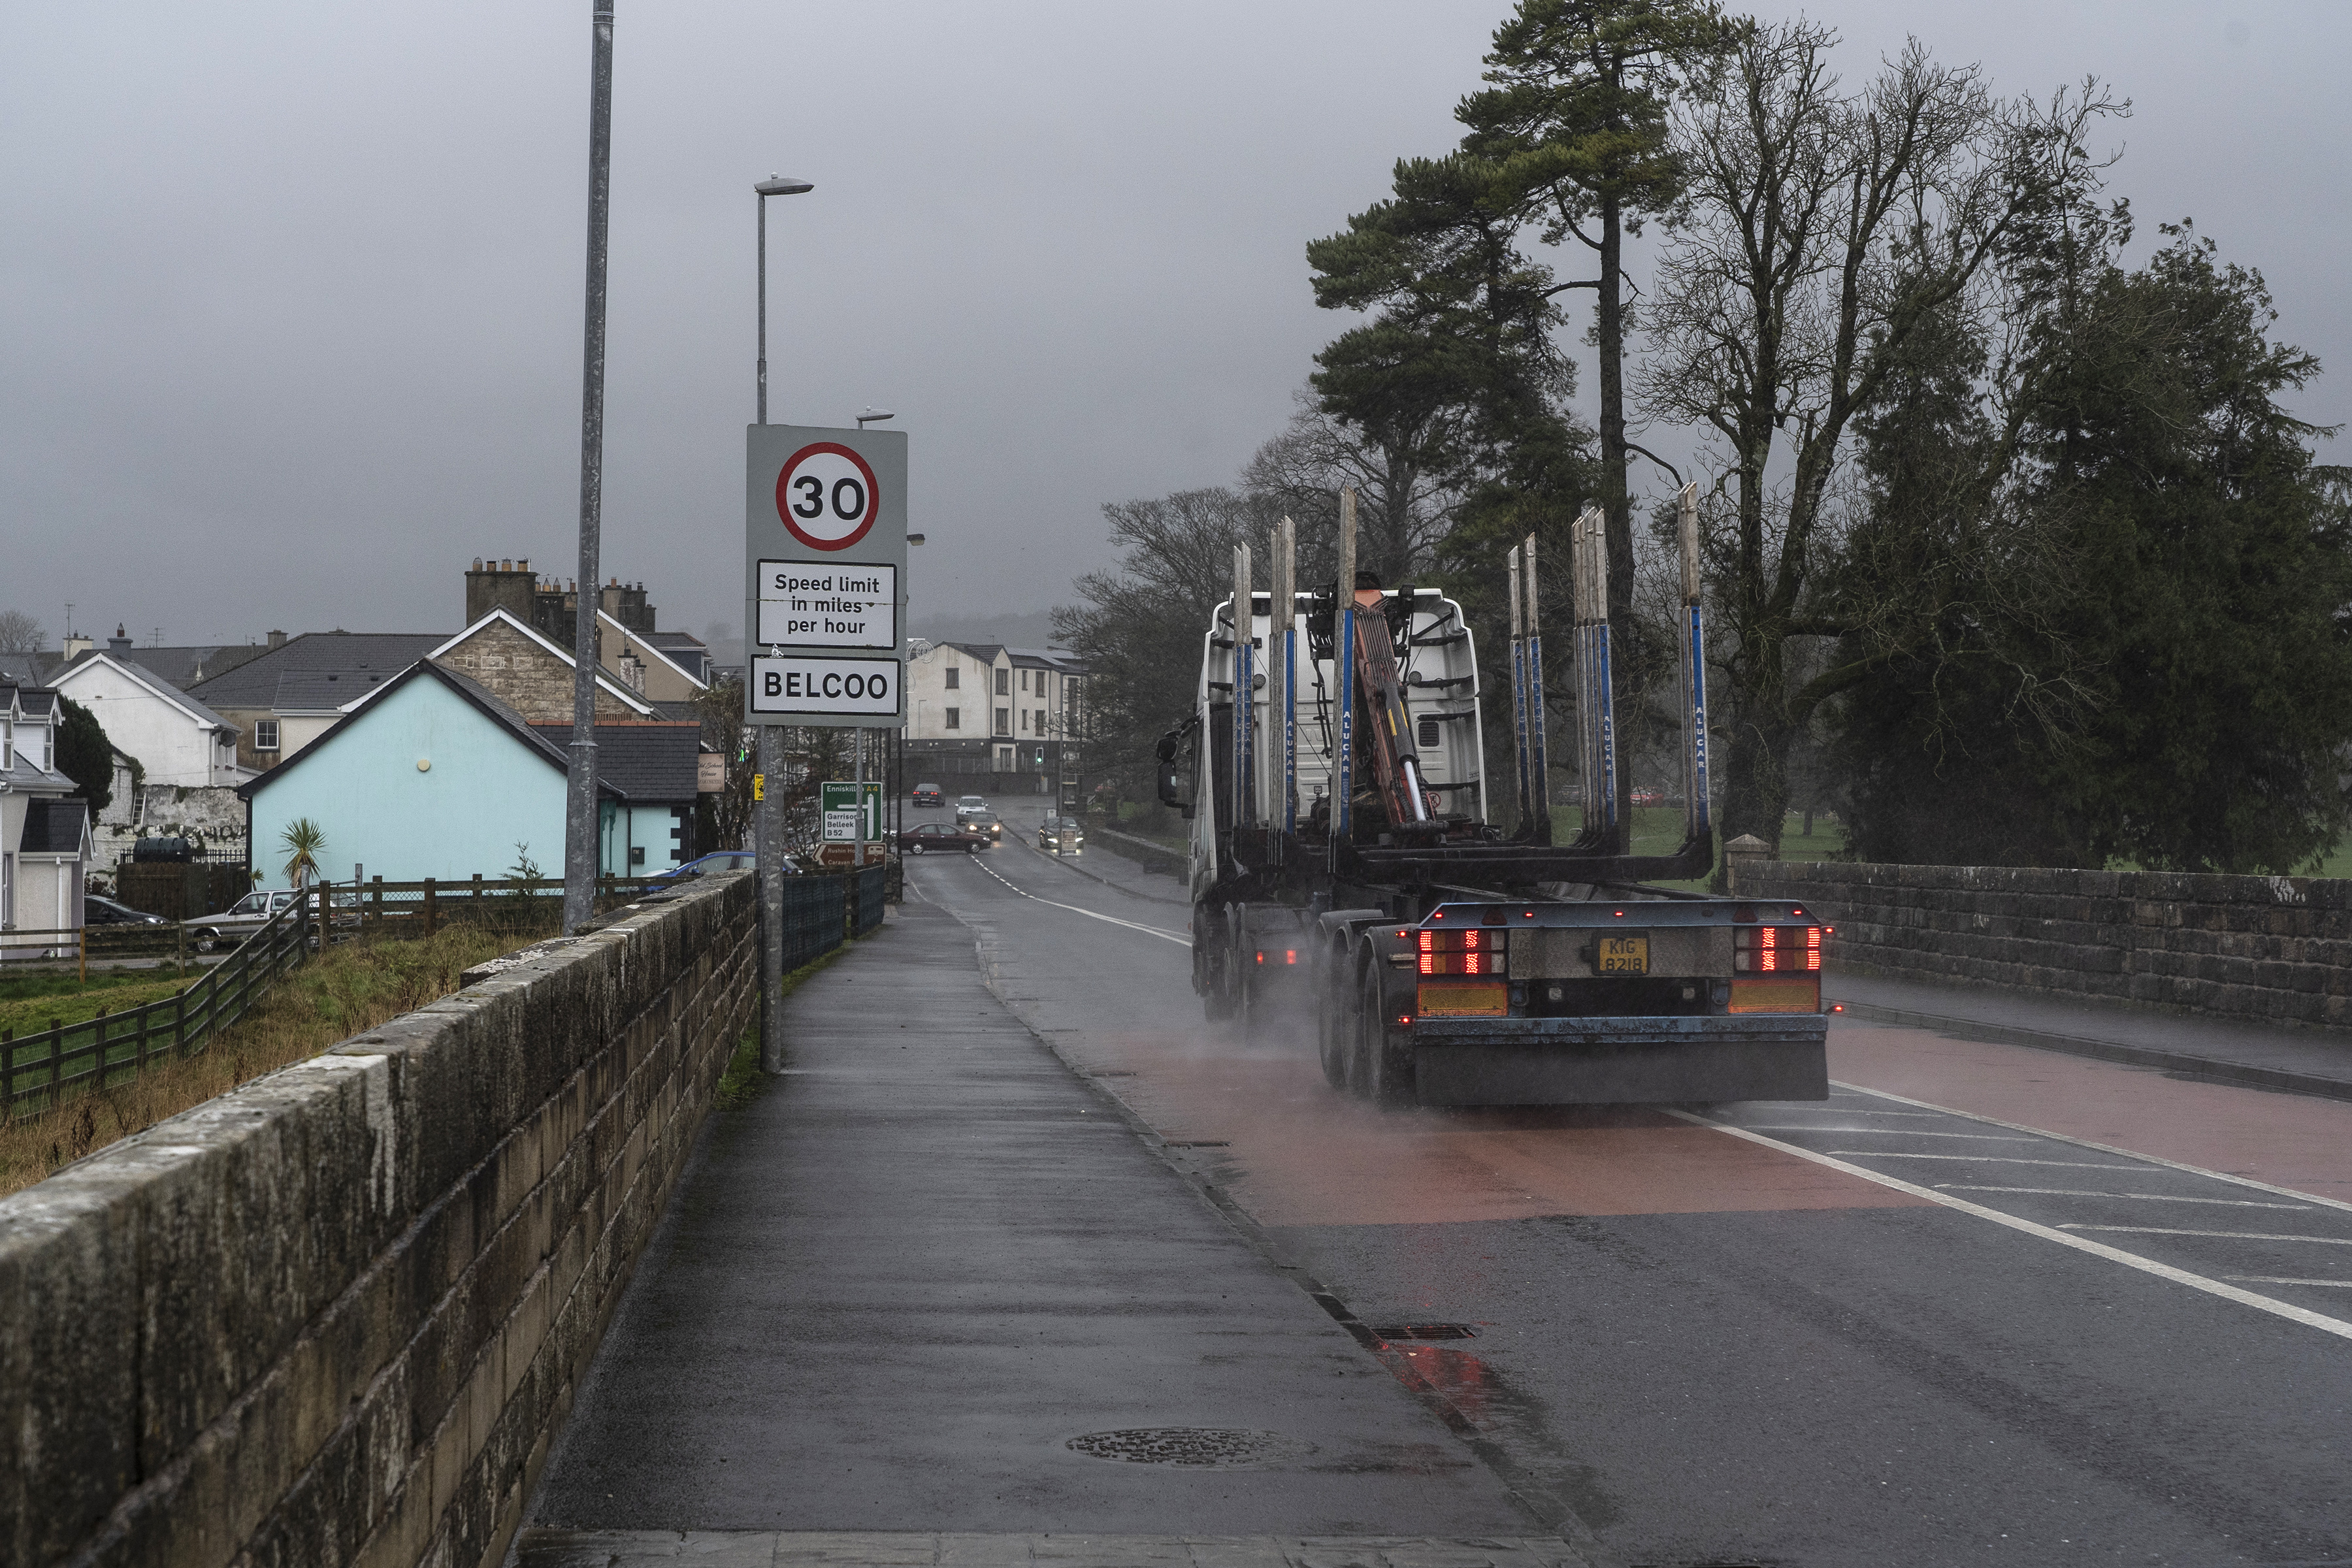 A truck crosses a bridge from Blacklion, Ireland, into Belcoo, a village in Northern Ireland. With the deadline for Britain to leave the European Union approaching, some regions are more vulnerable to economic disruptions from Brexit than others.